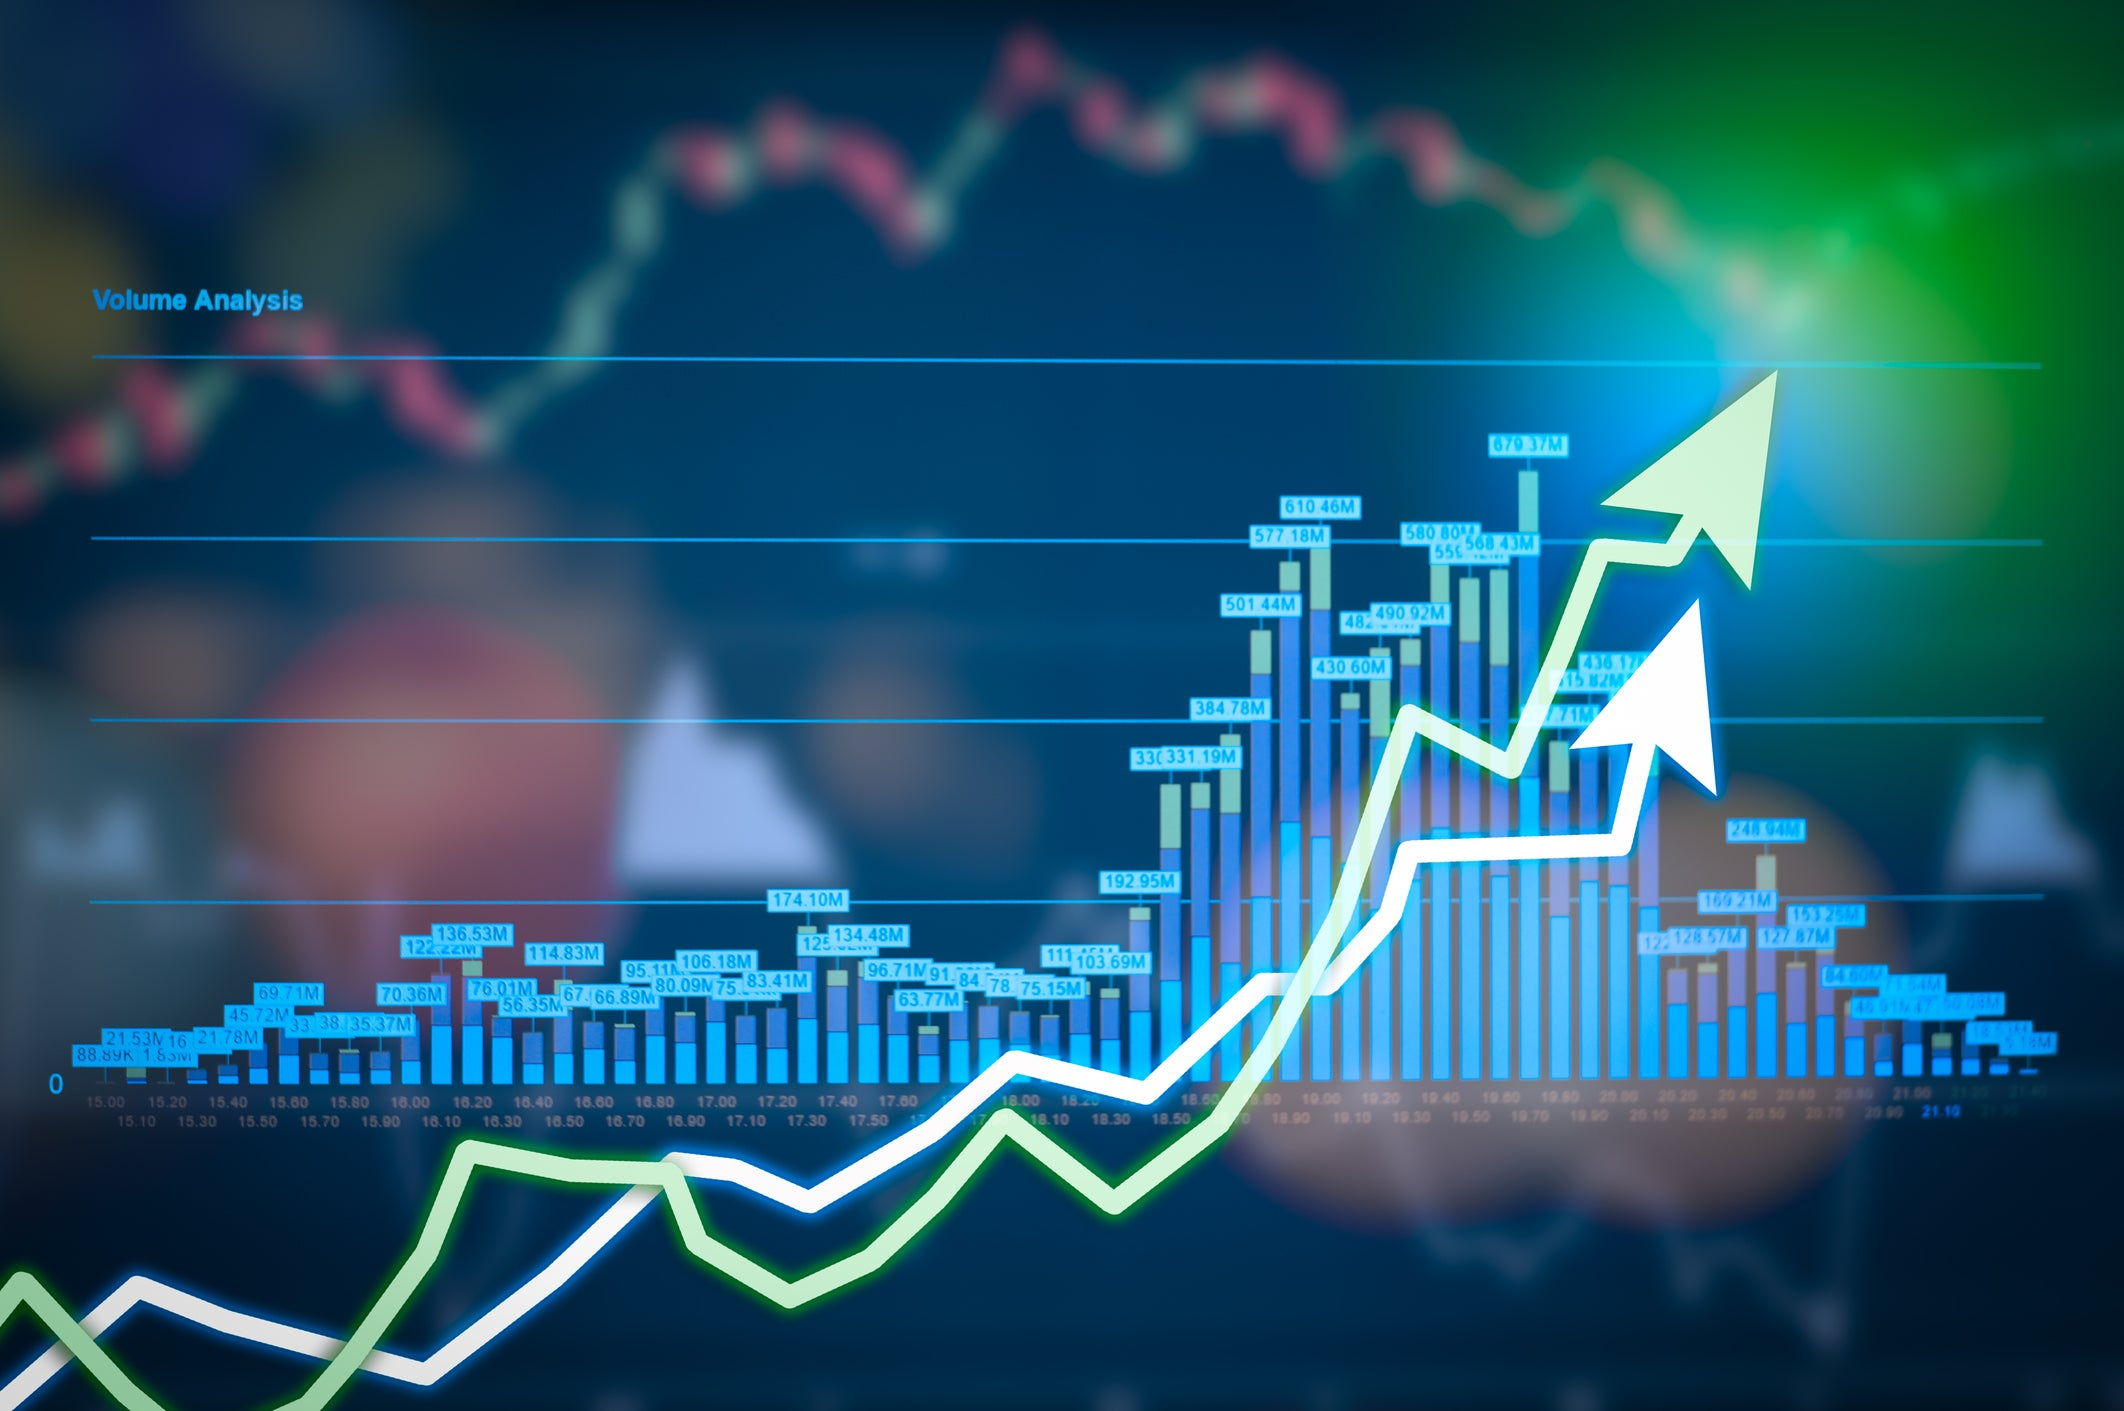 Why DocuSign, Slack, and Shopify Stocks Jumped on Wednesday